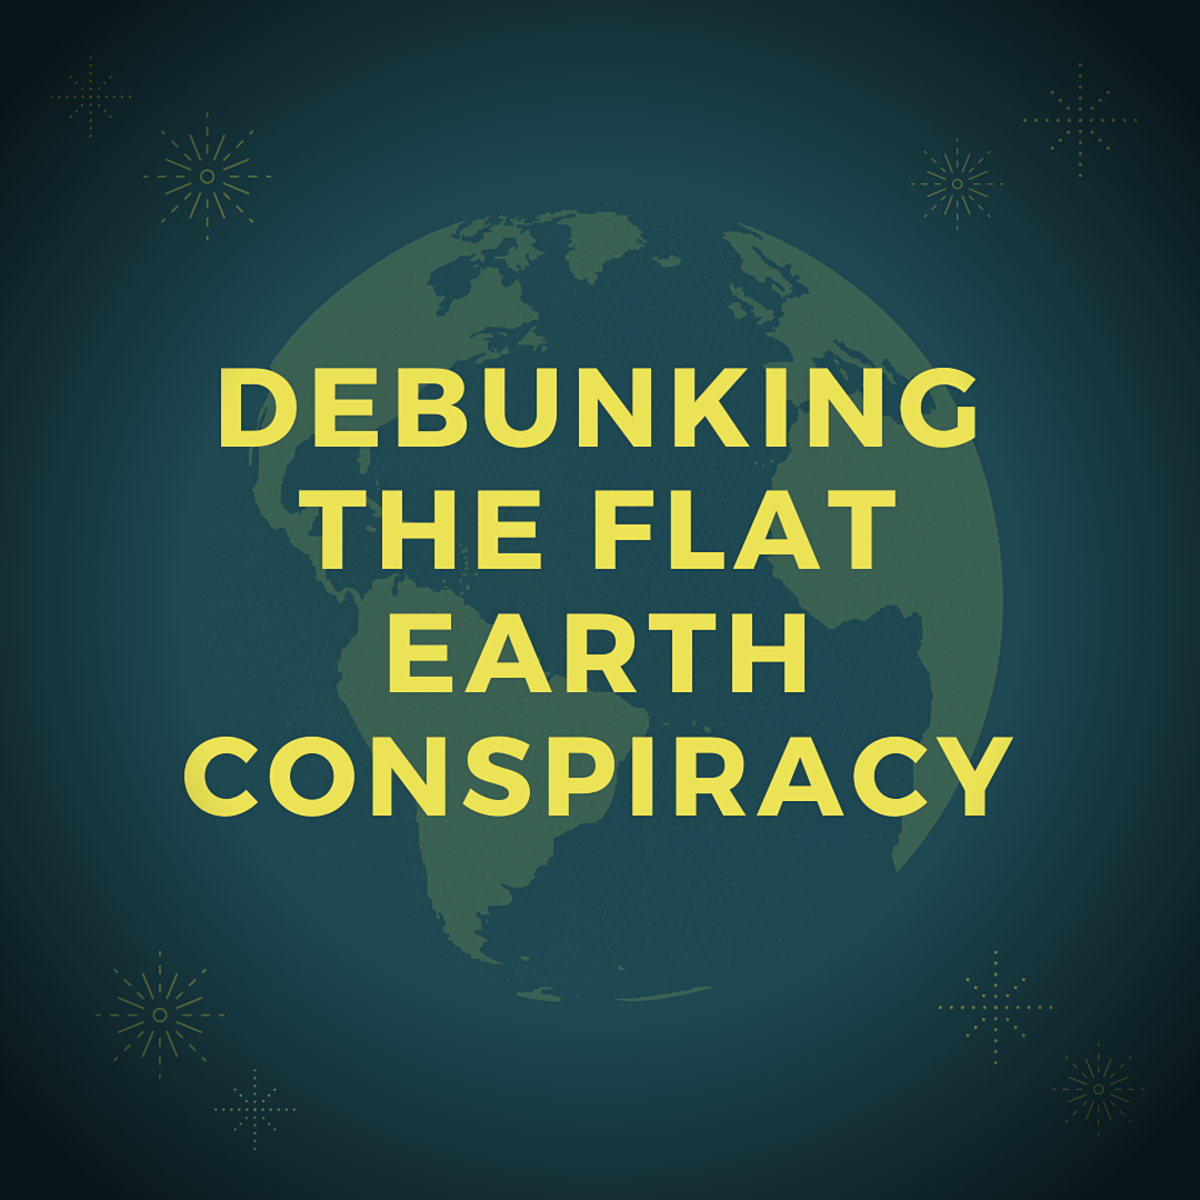 Best Arguments That Debunk the Flat Earth Conspiracy